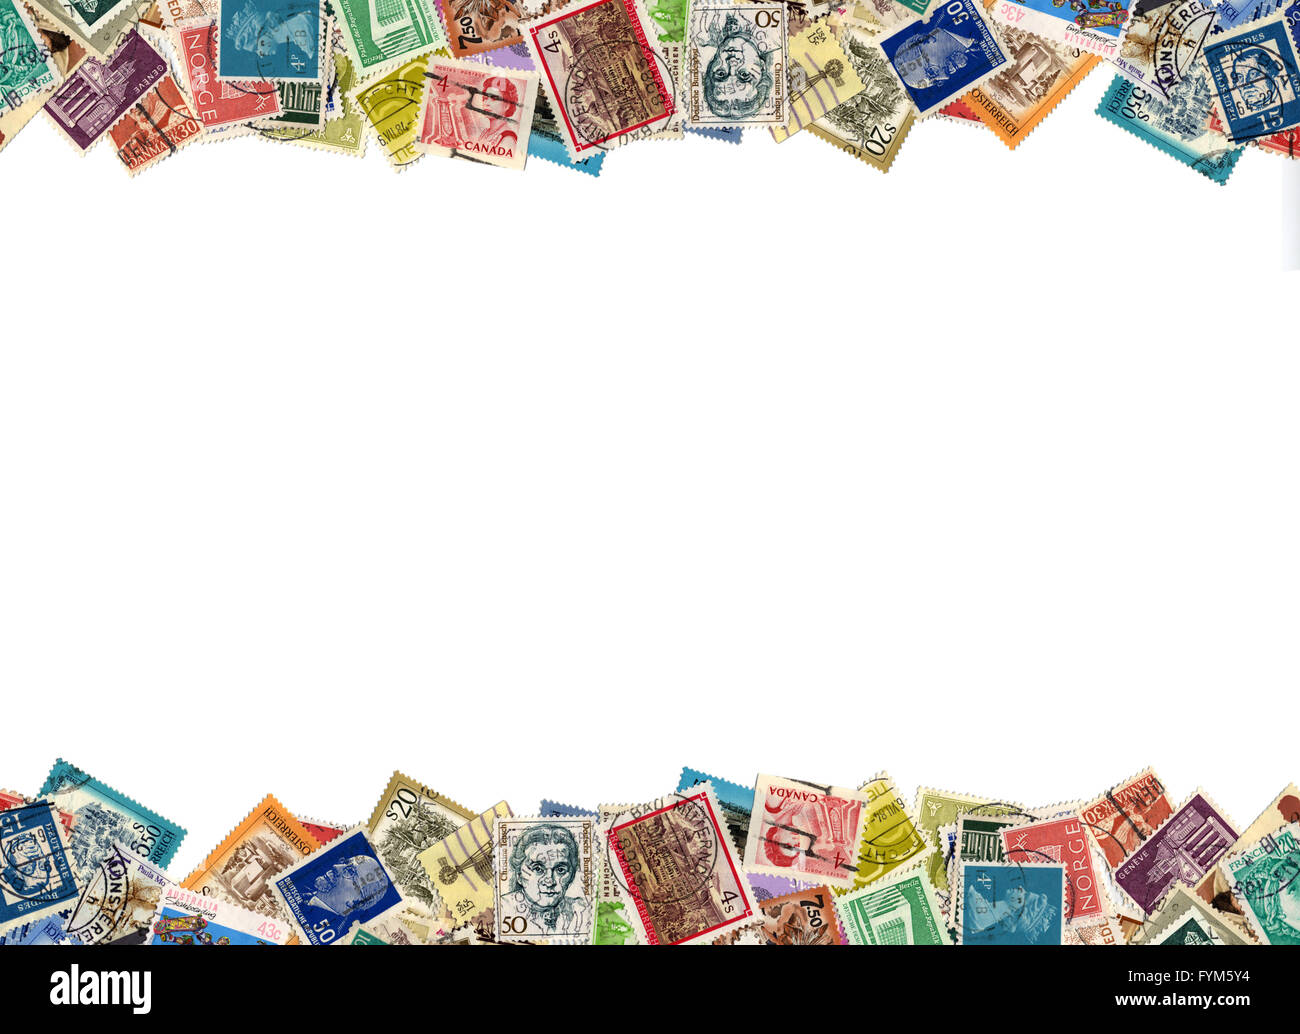 Postage Stamps Border Stock Photo 103091272